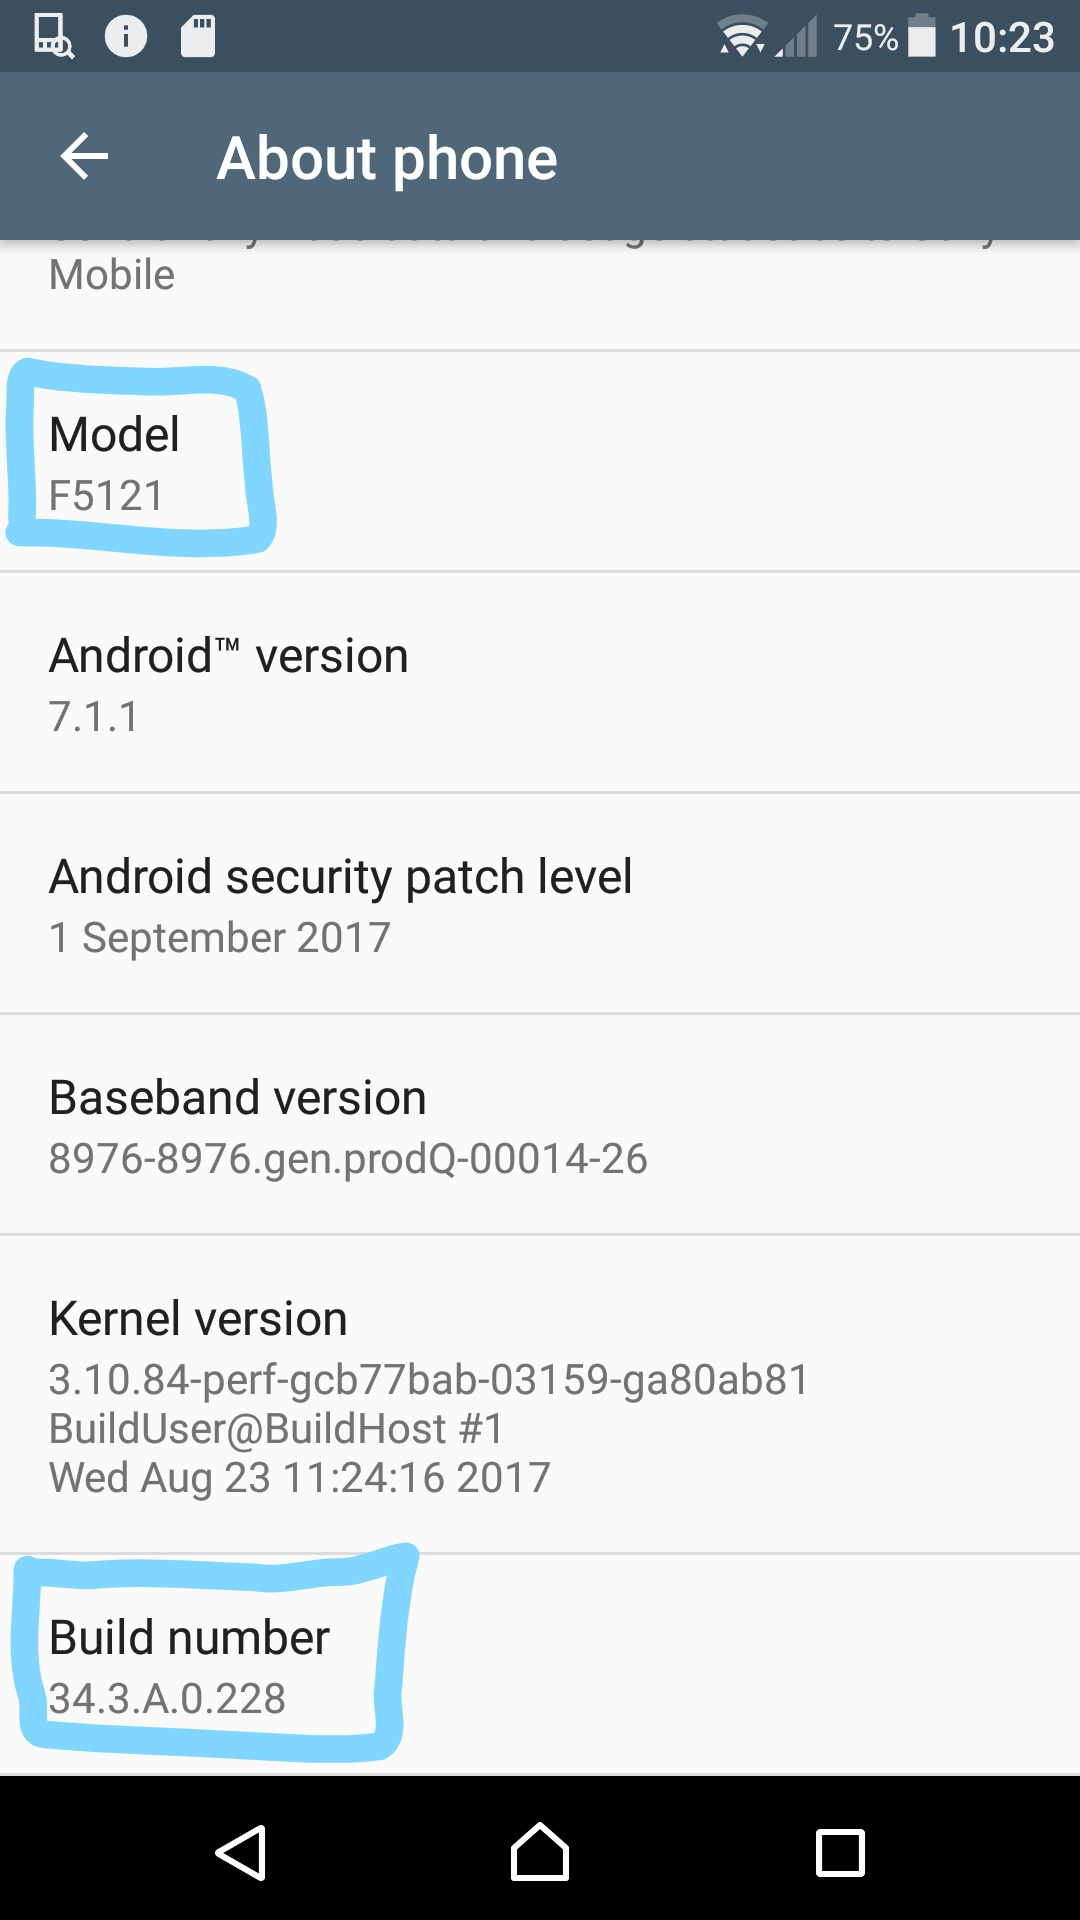 Xperia-Android-Settings-AboutPhone-BuildNumber.jpg